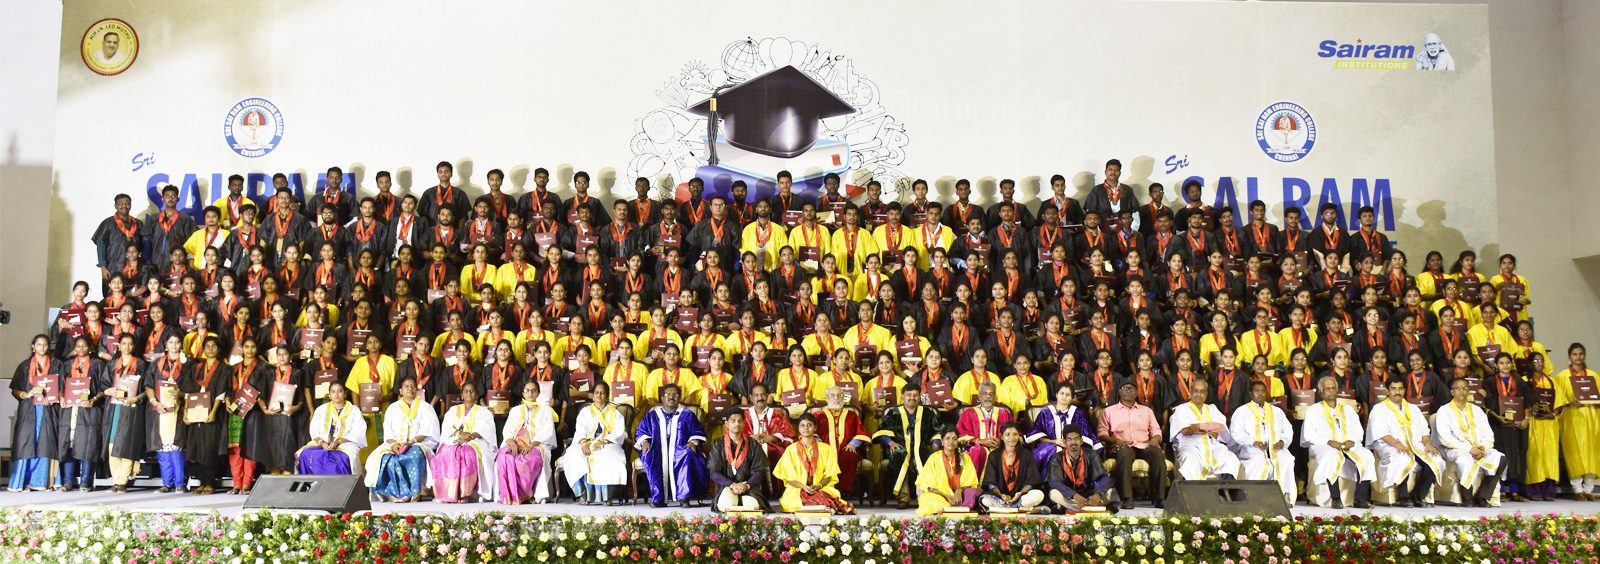 sairam-Graduation-Day